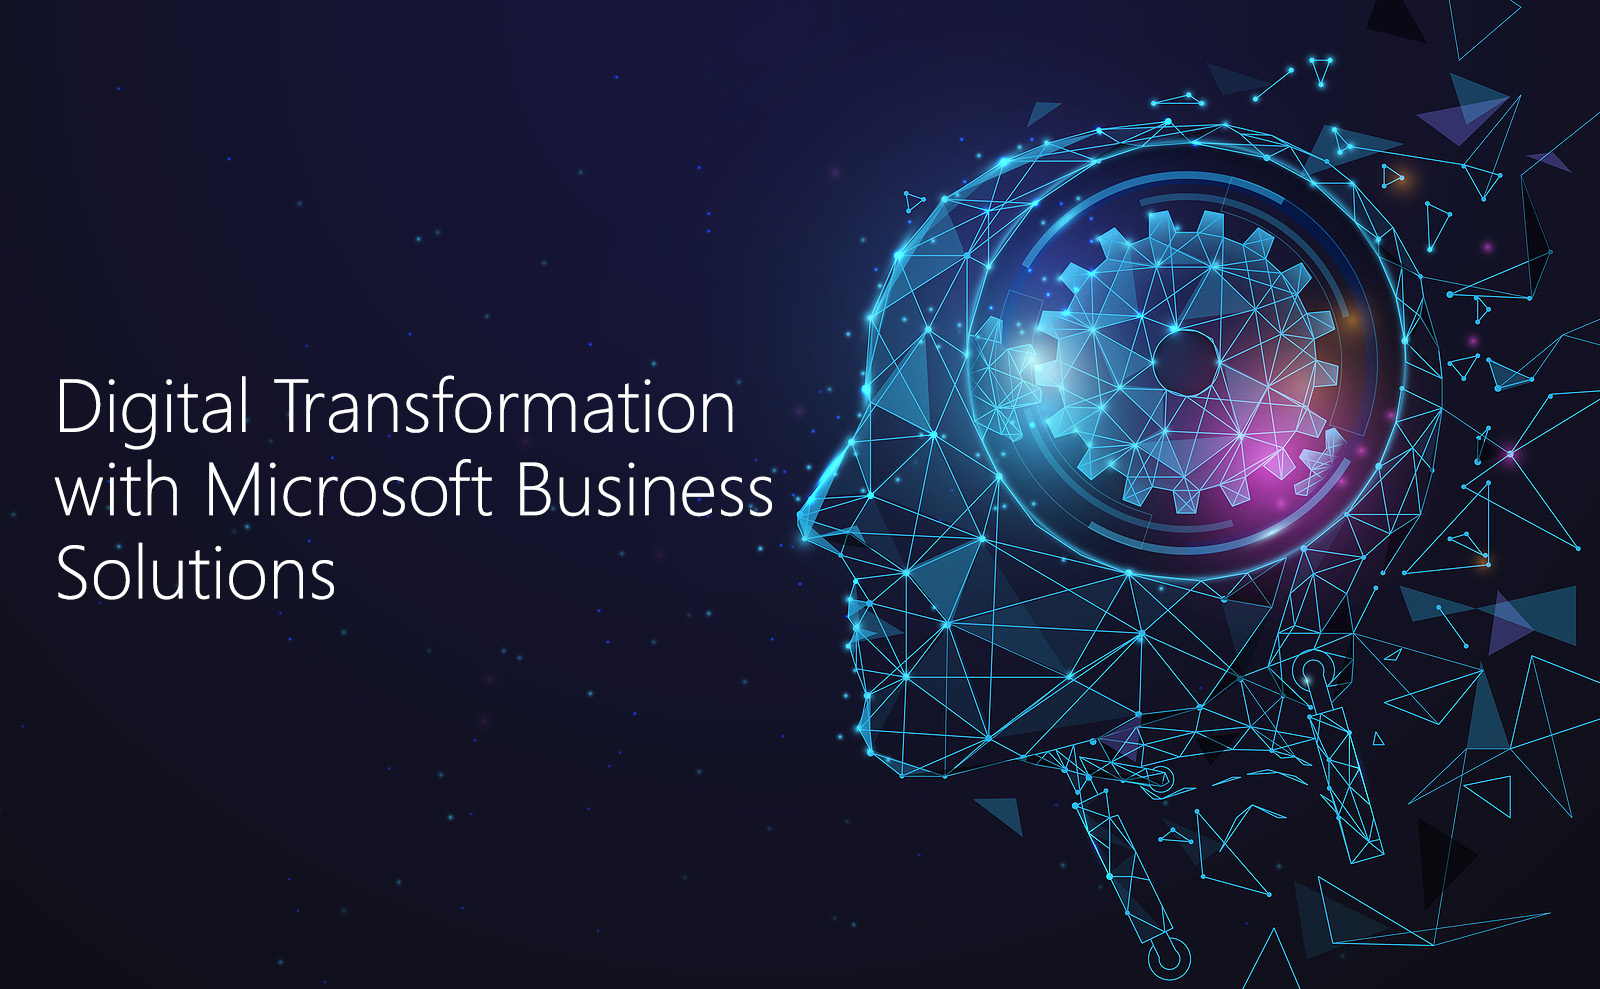 TMC-blog-digital-transformation-benefits-with-microsoft-business-solutions